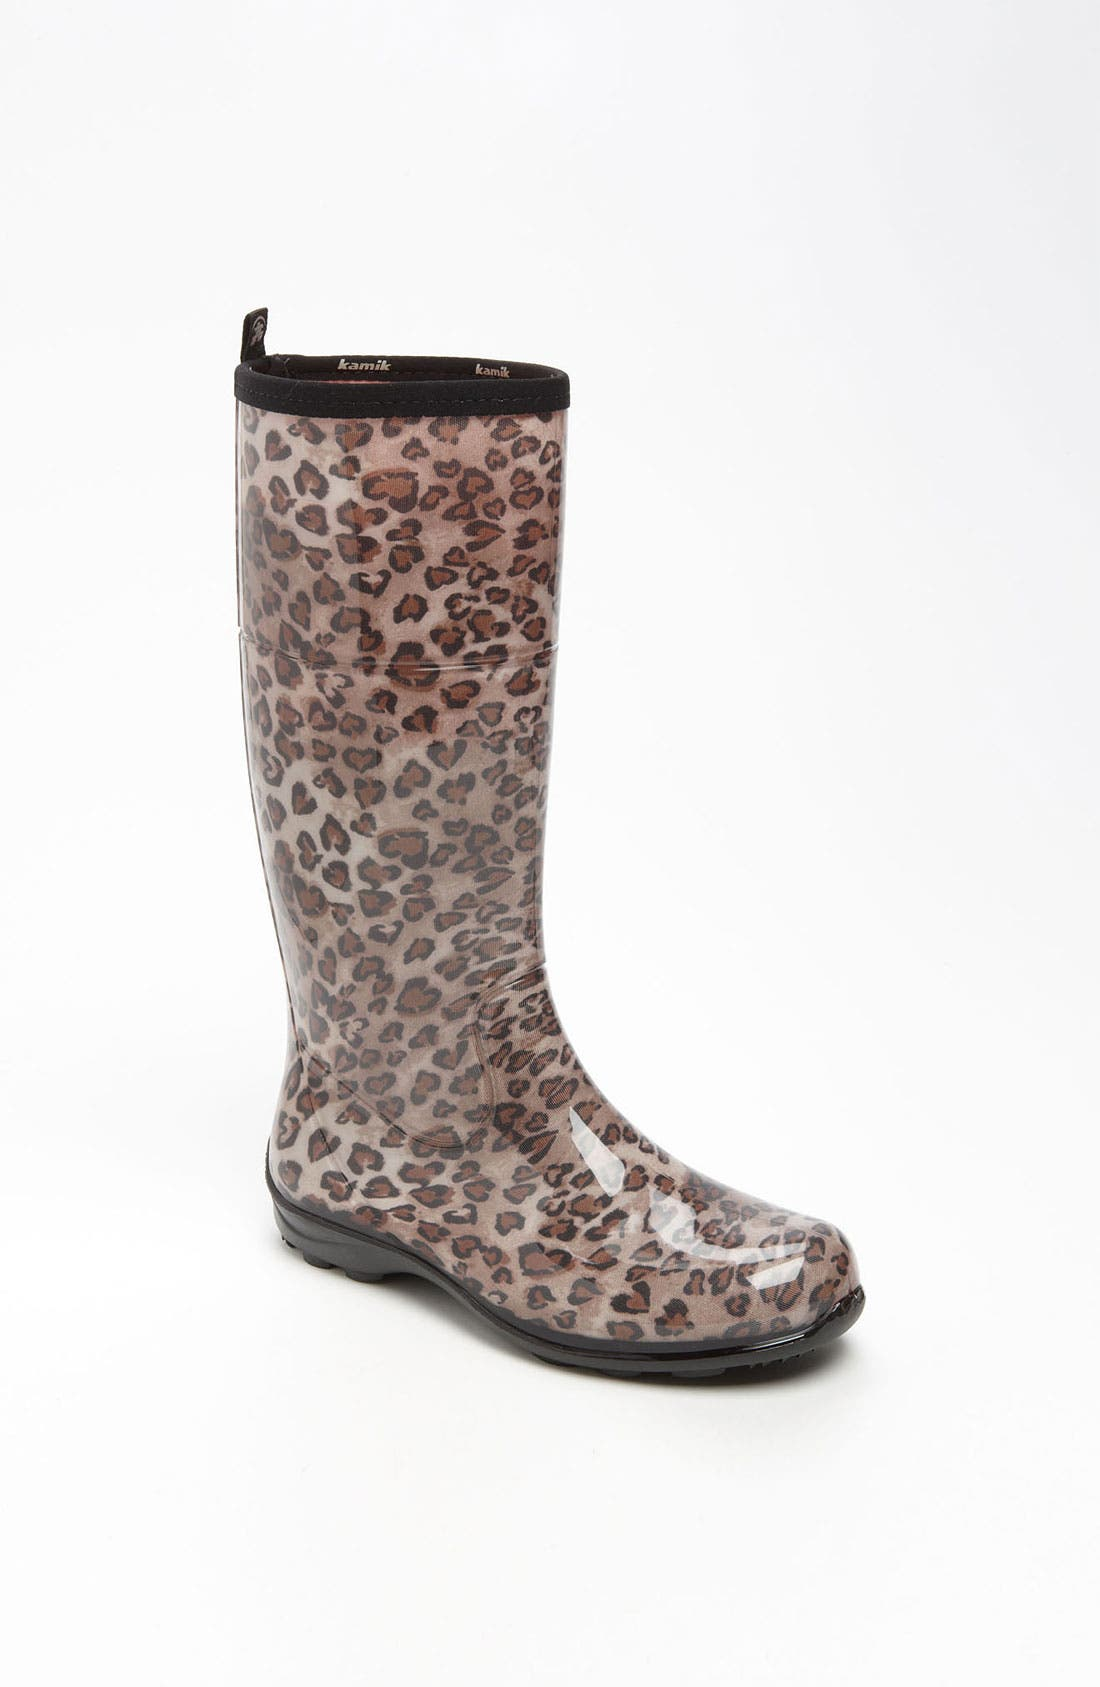 Main Image - Kamik 'Kenya' Rain Boot (Women)